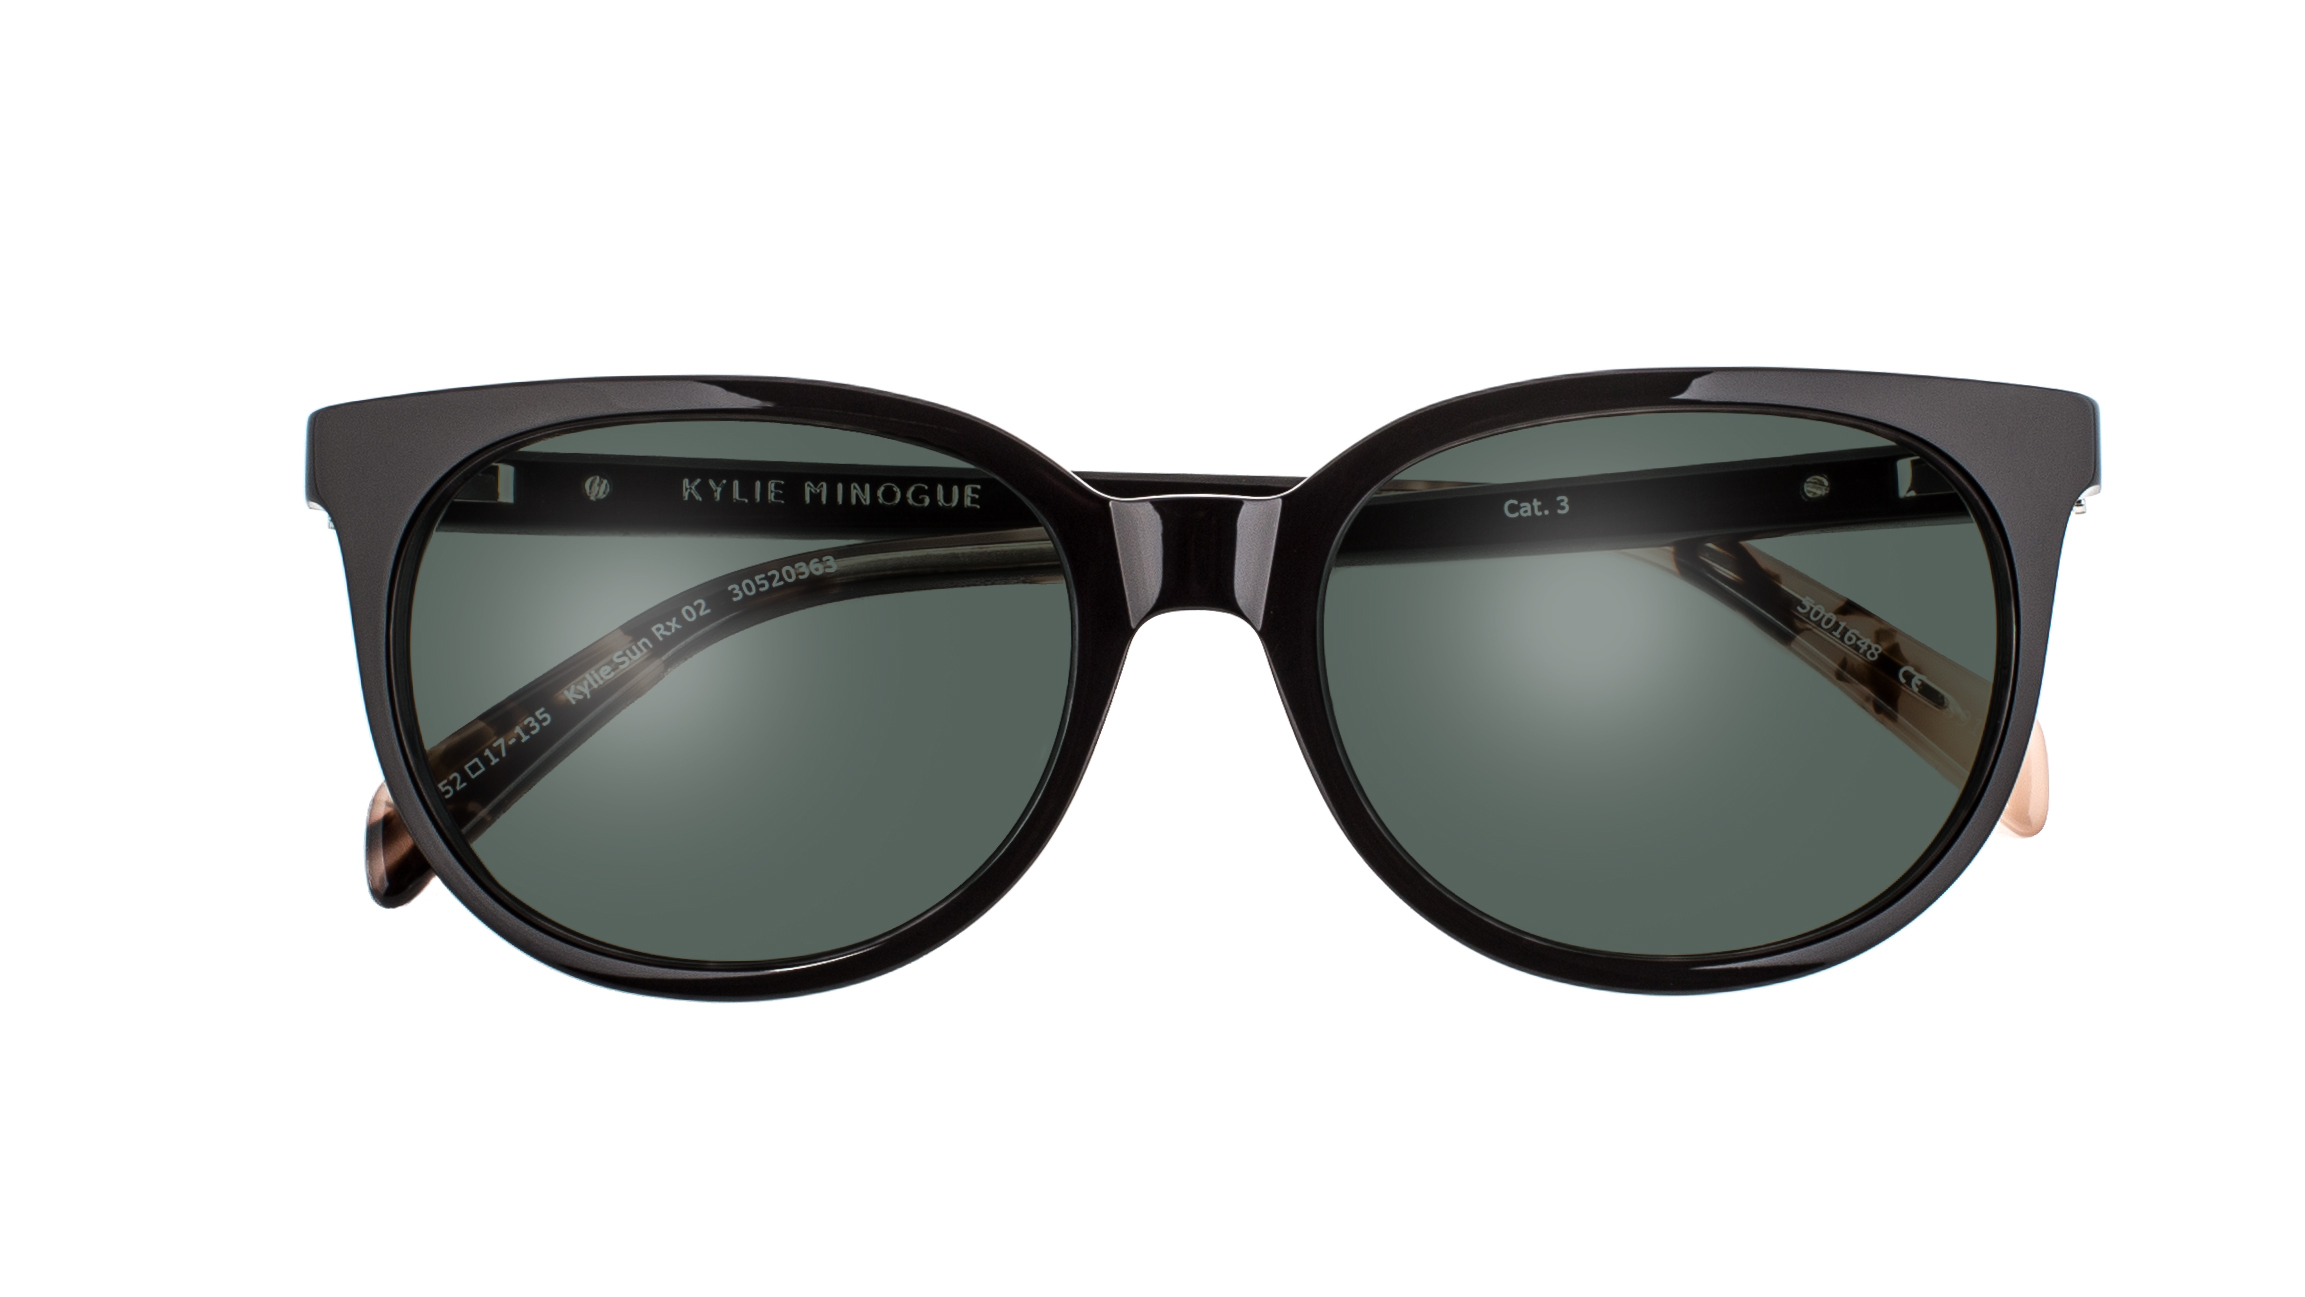 Kylie Minogue Eyewear_Kylie SUN RX 02_SKU 30520363_RRP 2 pairs from $369